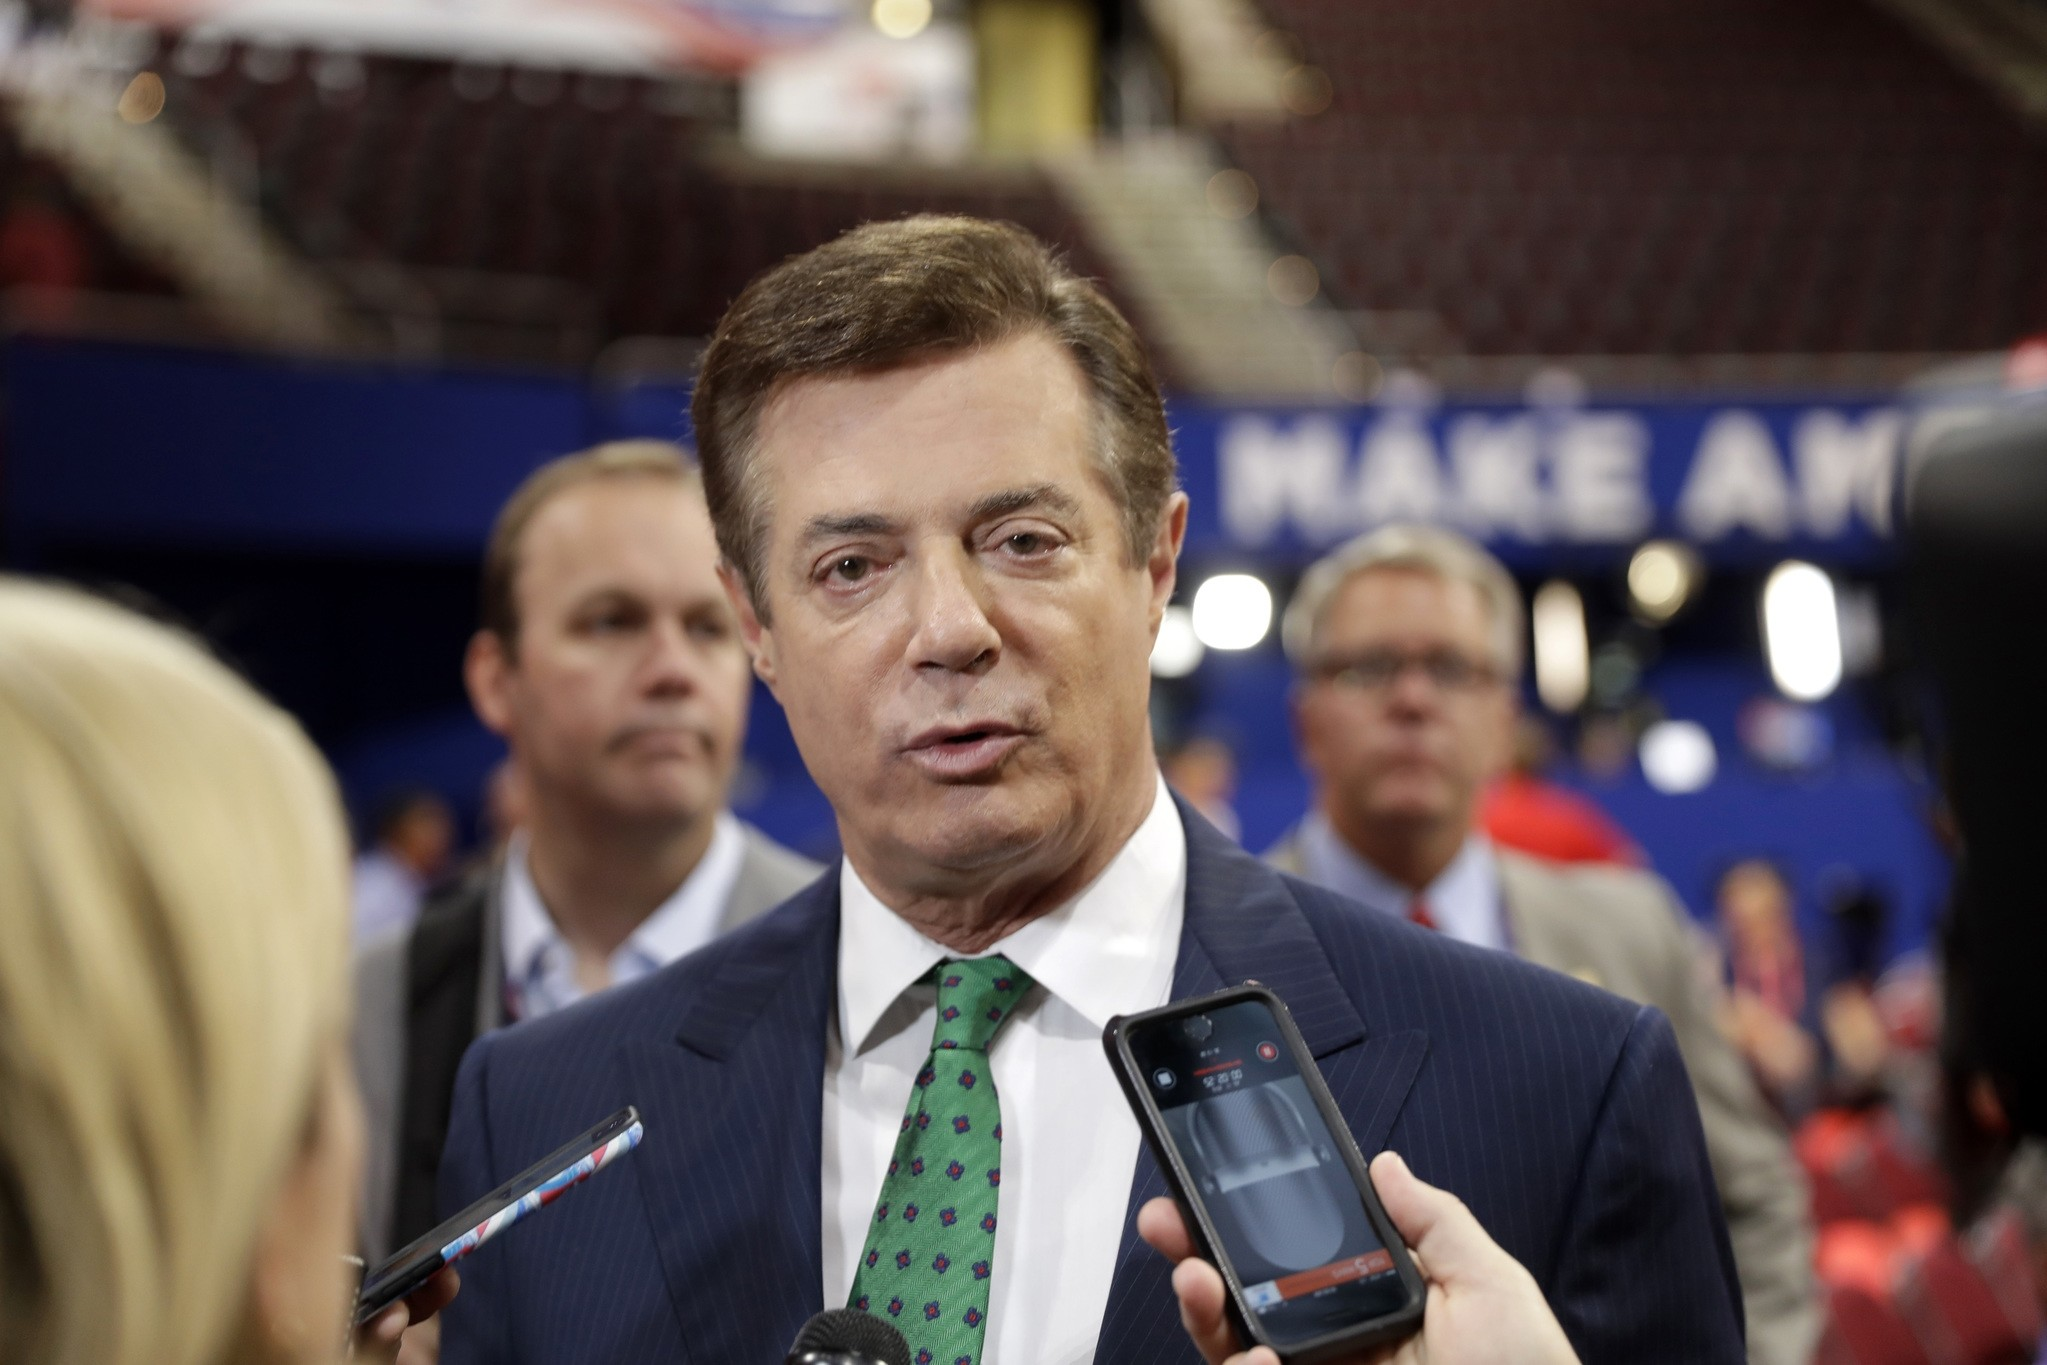 In this July 17, 2016 file photo, then-DonaldTrump Campaign Chairman Paul Manafort talks to reporters on the floor of the Republican NC, in Cleveland. (AP Photo)